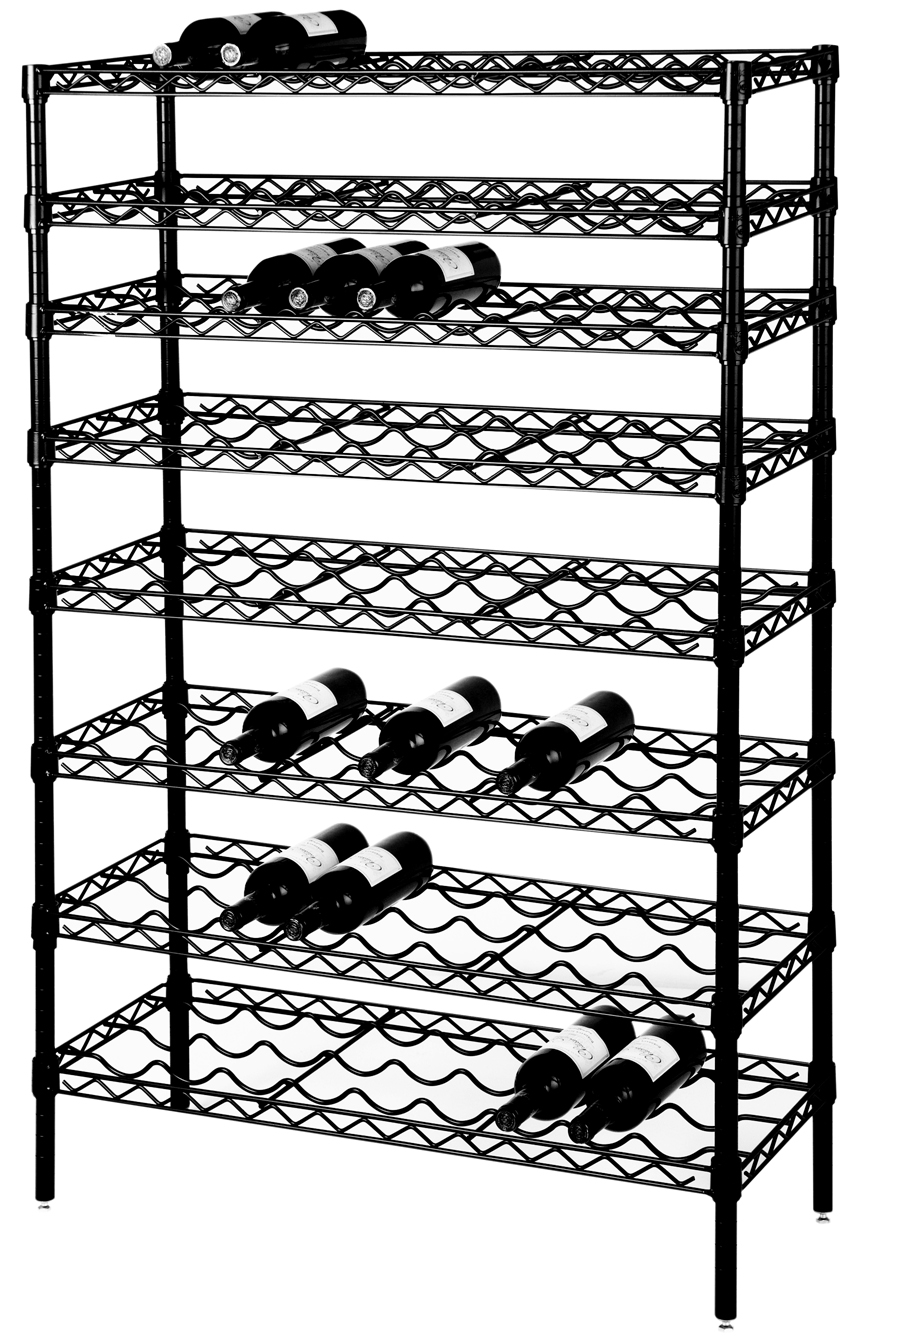 BK_WINE_RACK_grayscale